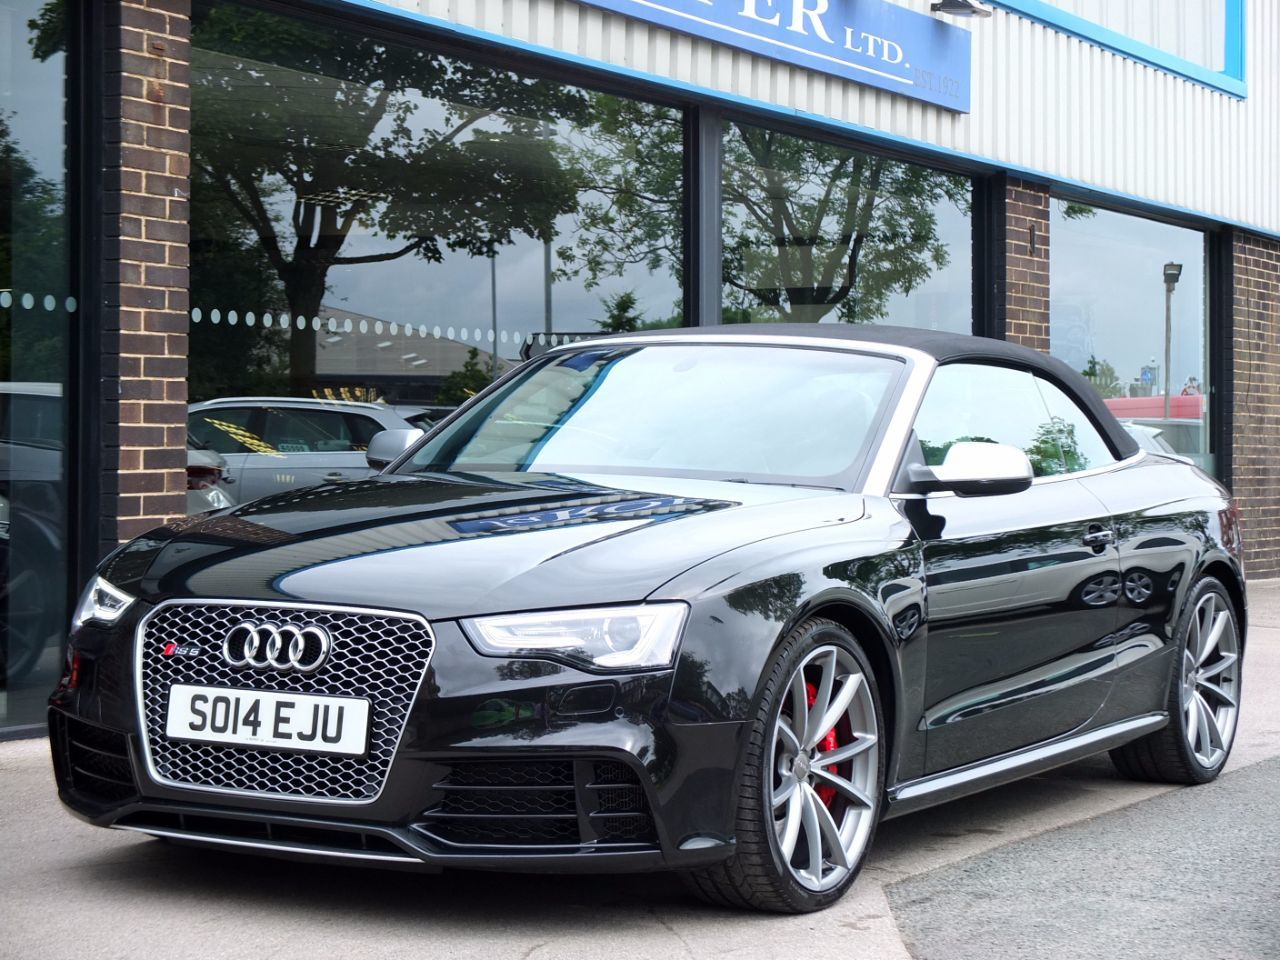 Audi RS5 Cabriolet 4.2 FSI Quattro S Tronic Convertible Petrol Panther  Black CrystalAudi RS5 Cabriolet 4.2